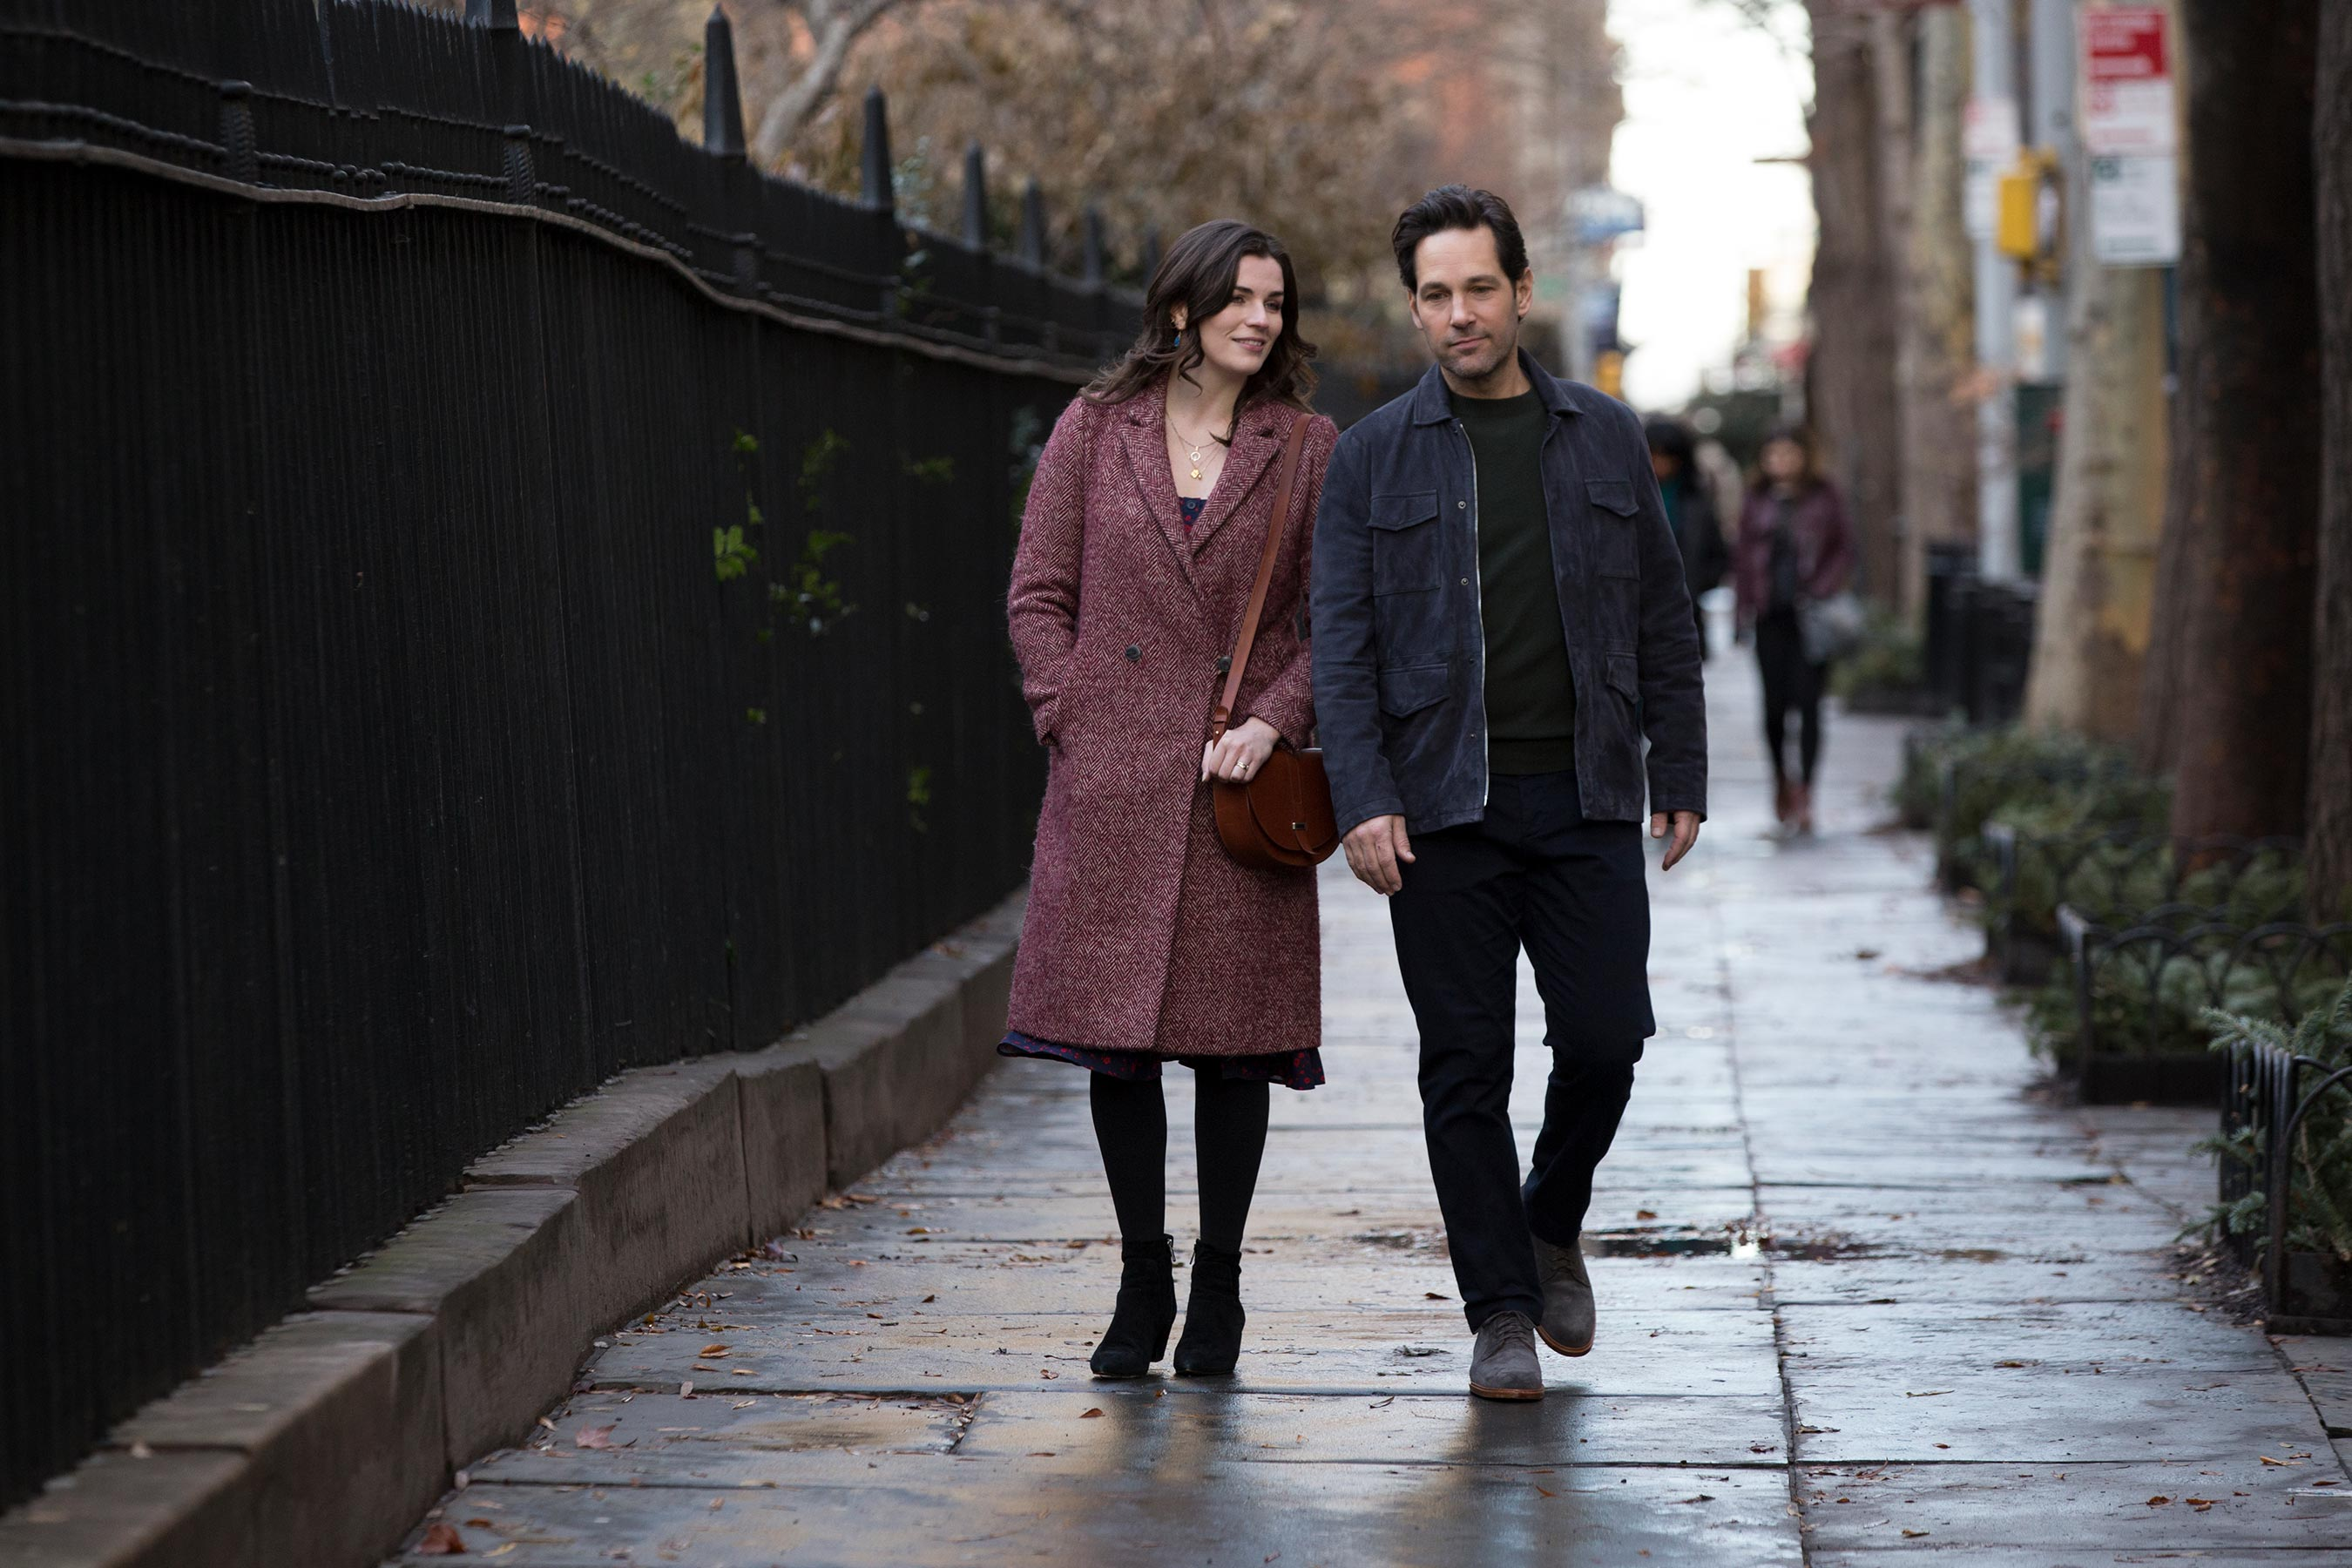 Paul Rudd and Aisling Bea